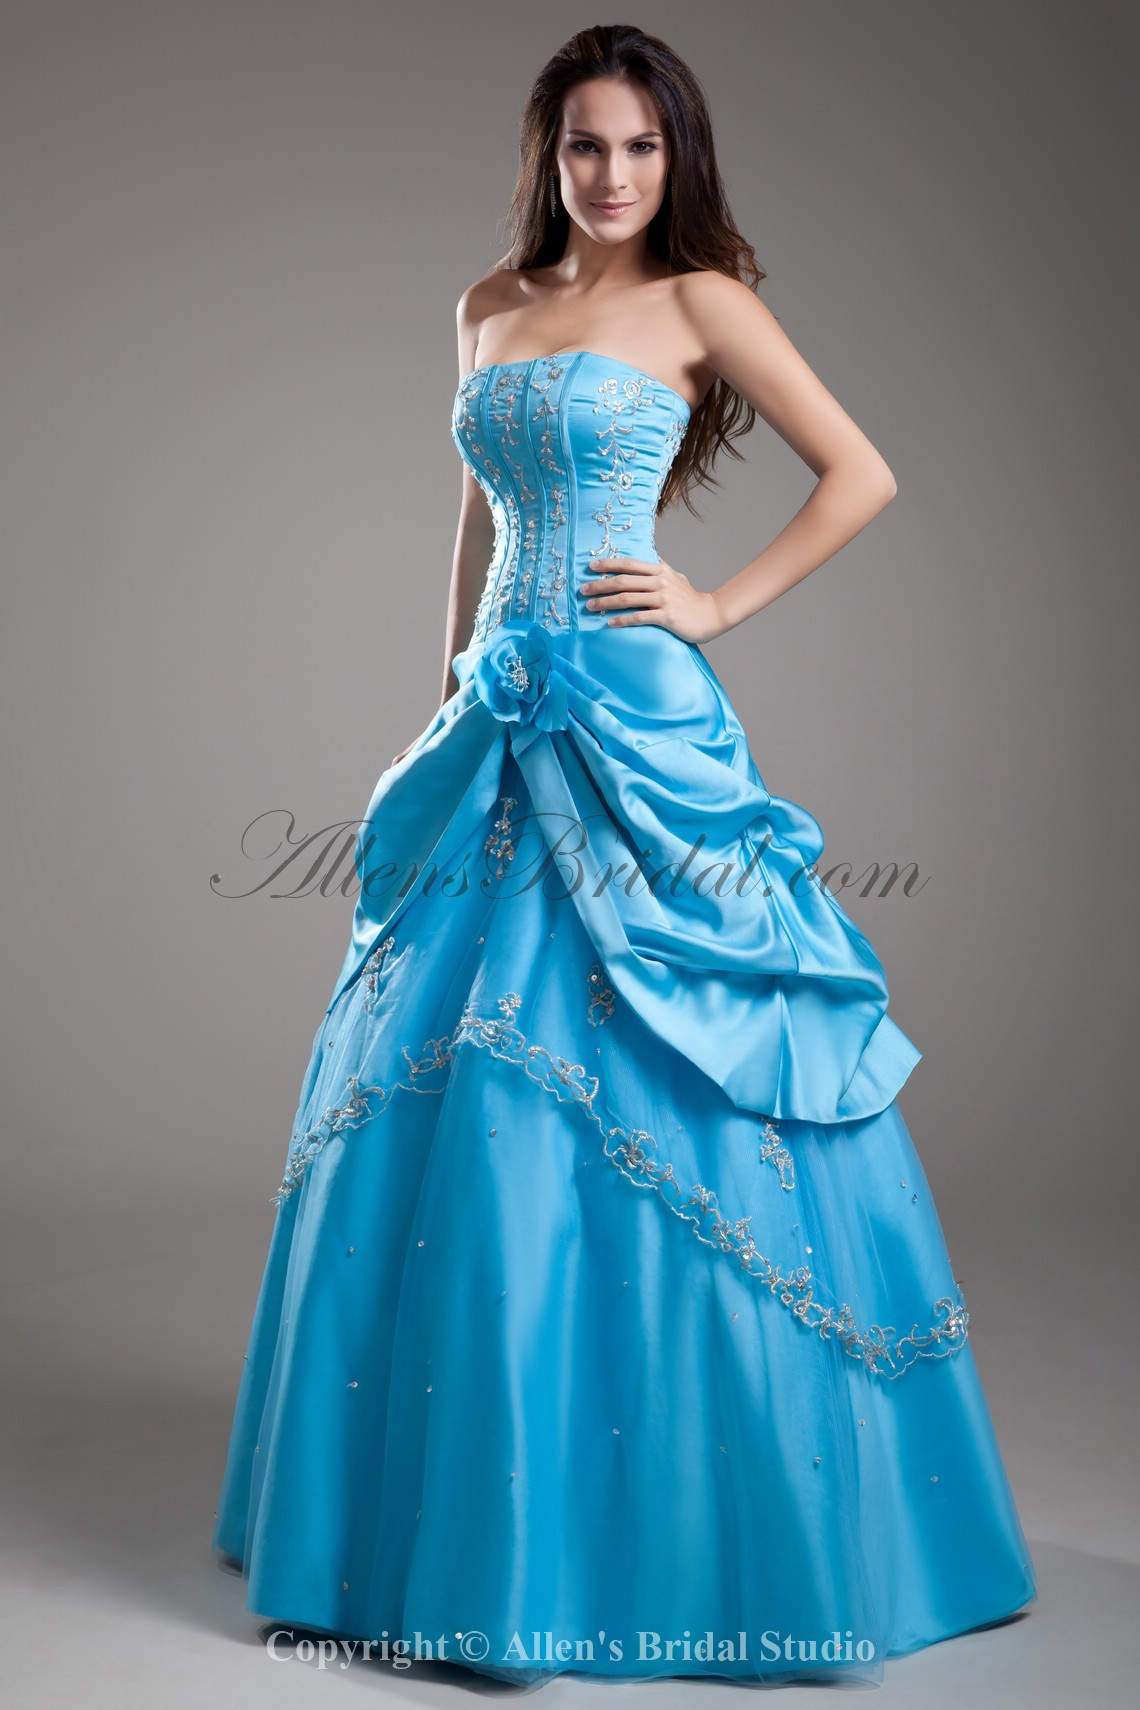 /686-5493/satin-sweetheart-floor-length-ball-gown-embroidered-prom-dress.jpg